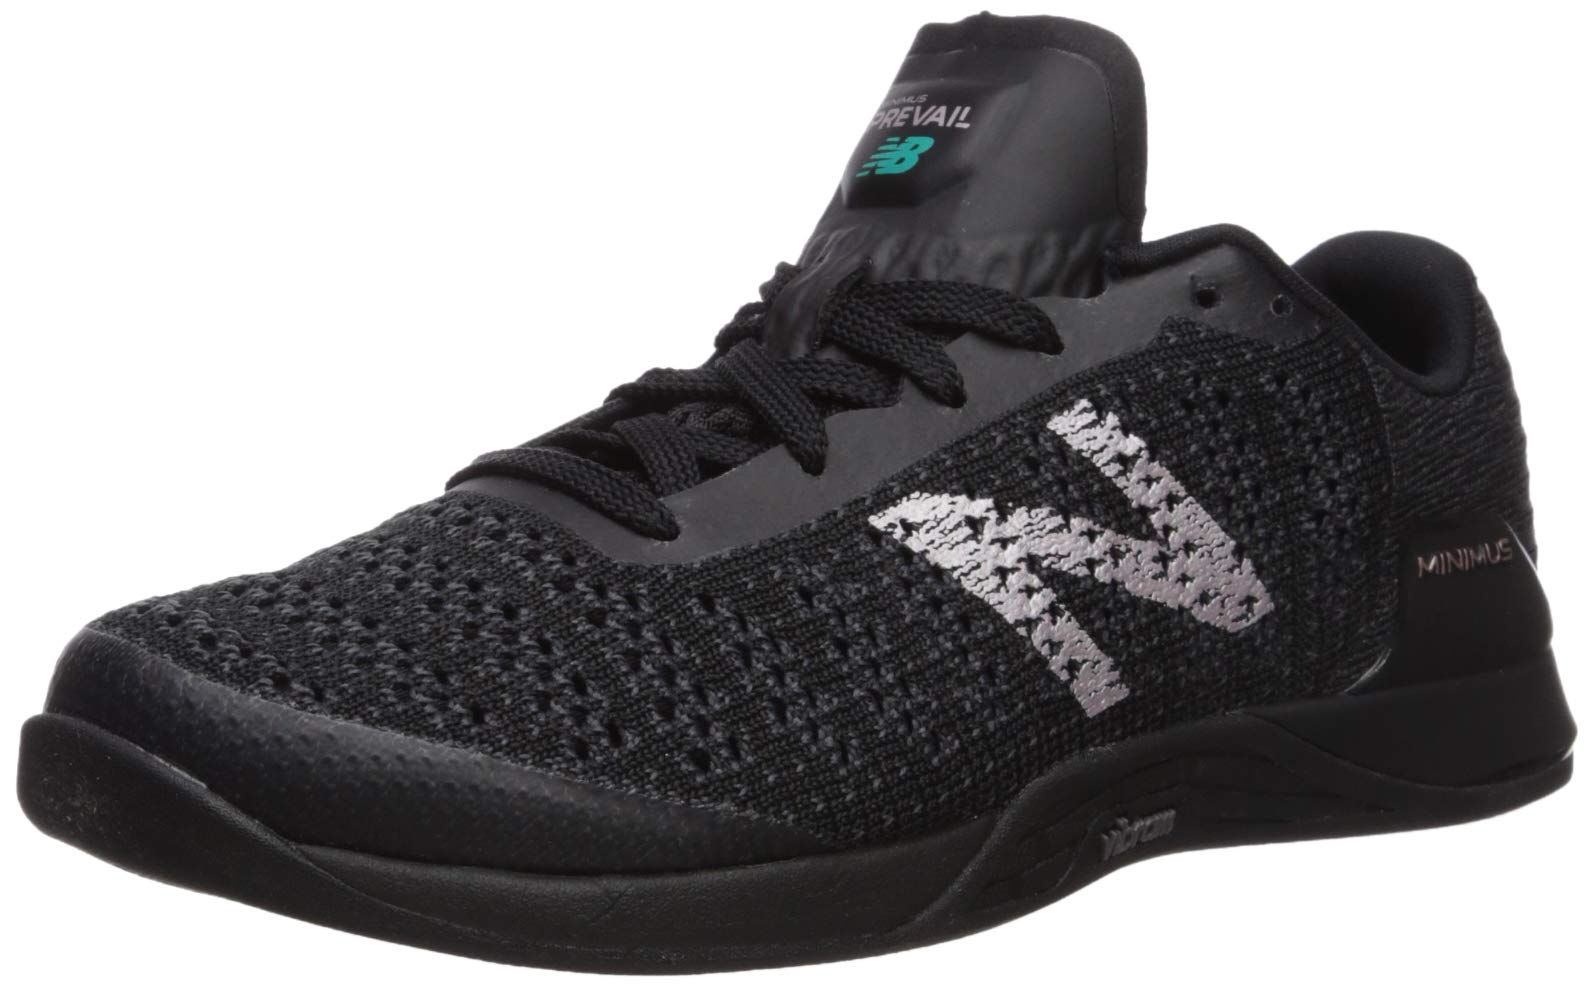 New Balance Women's Prevail V1 Minimus Track and Field Shoe, Black/Magnet, 7.5 M US by New Balance